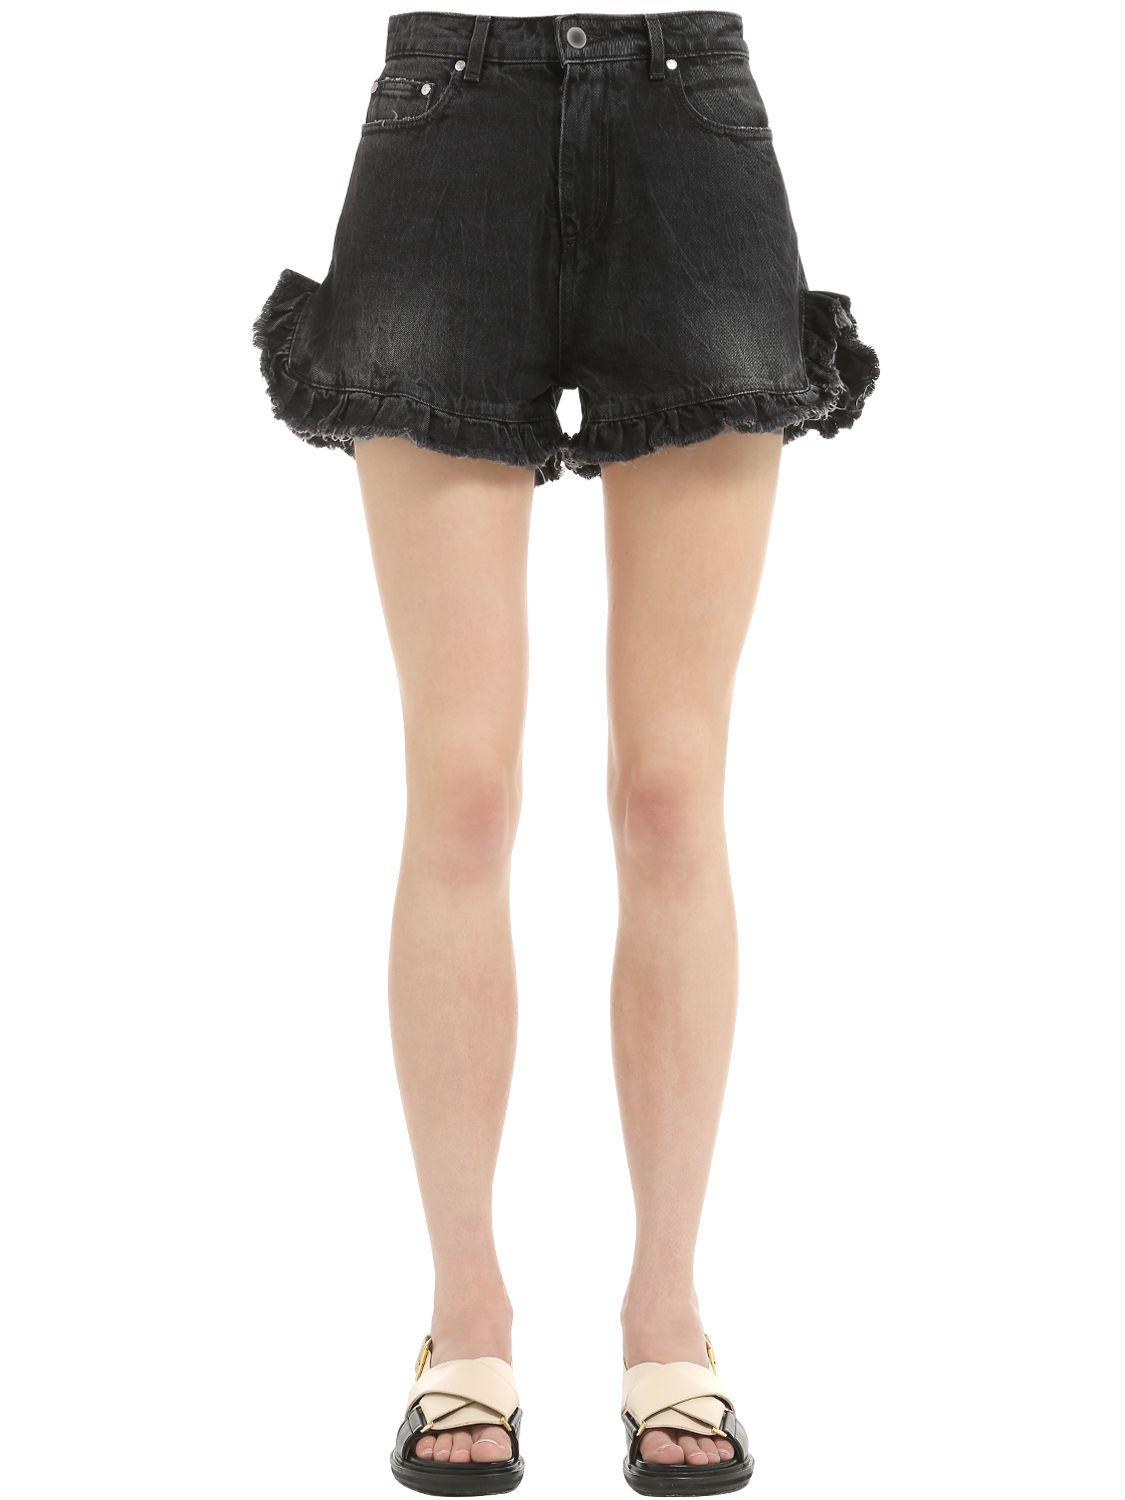 5151922e31 MSGM Ruffled Cotton Denim Shorts in Black - Lyst